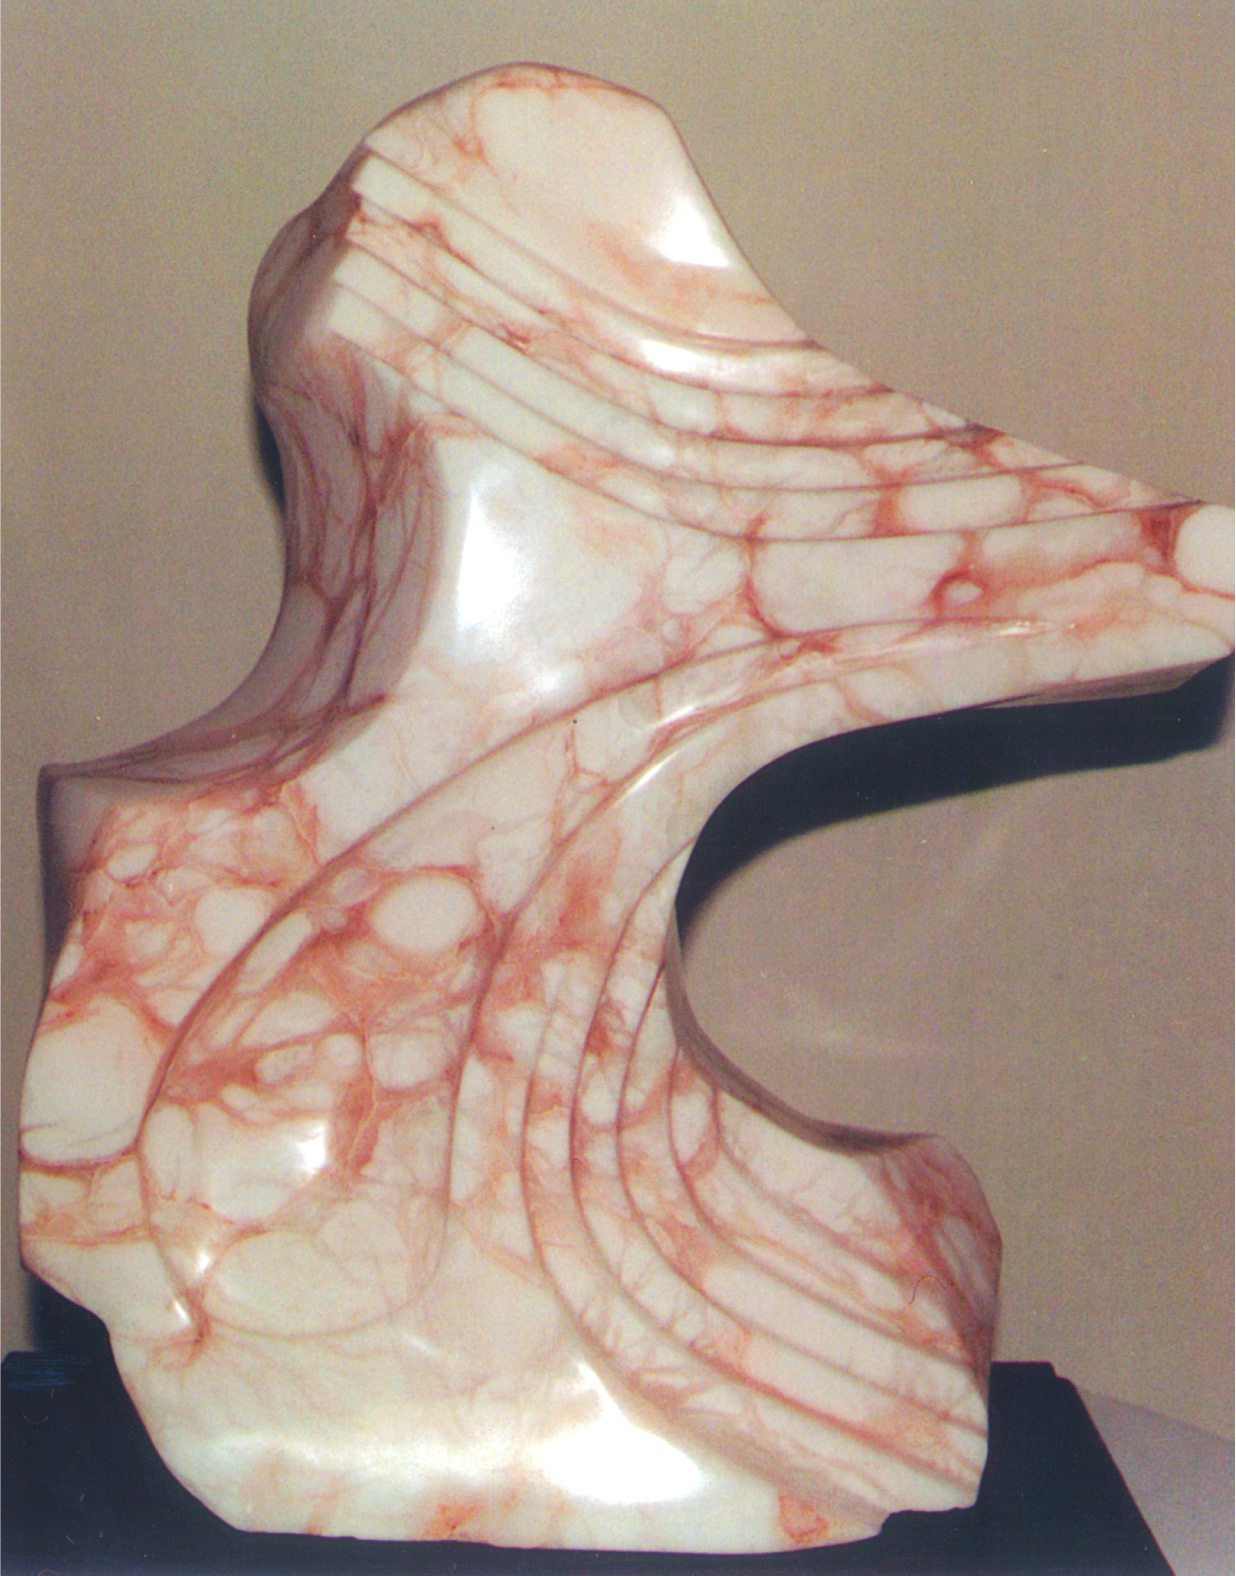 Antiquity's Tear - 1998 - Carved from Coral Alabaster. Artist: Steven Zimmerman